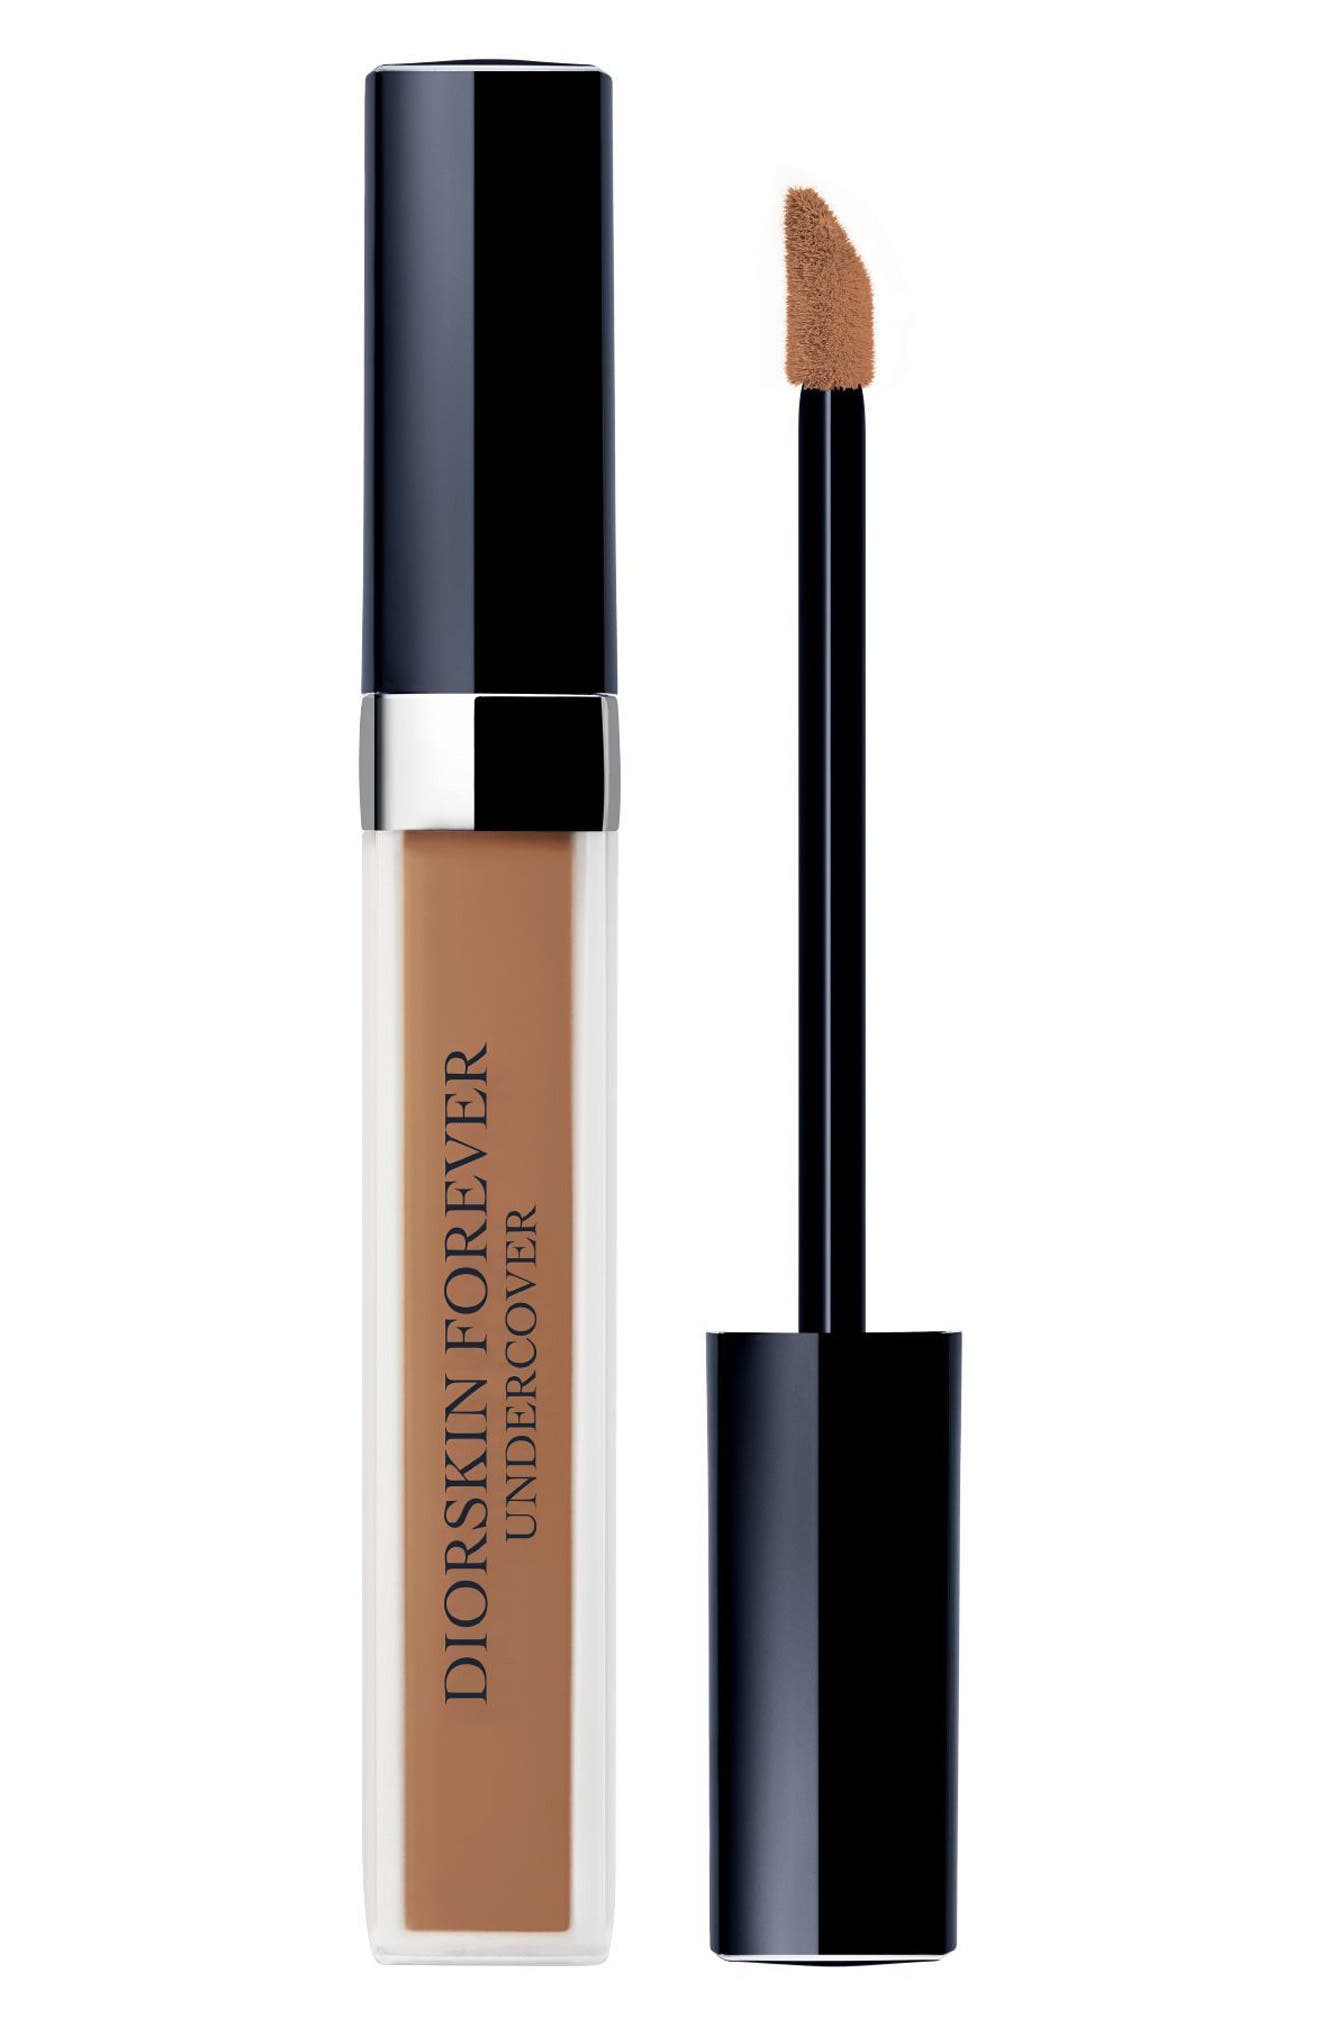 DIOR,                             Diorskin Forever Undercover Concealer,                             Main thumbnail 1, color,                             060 LIGHT MOCHA